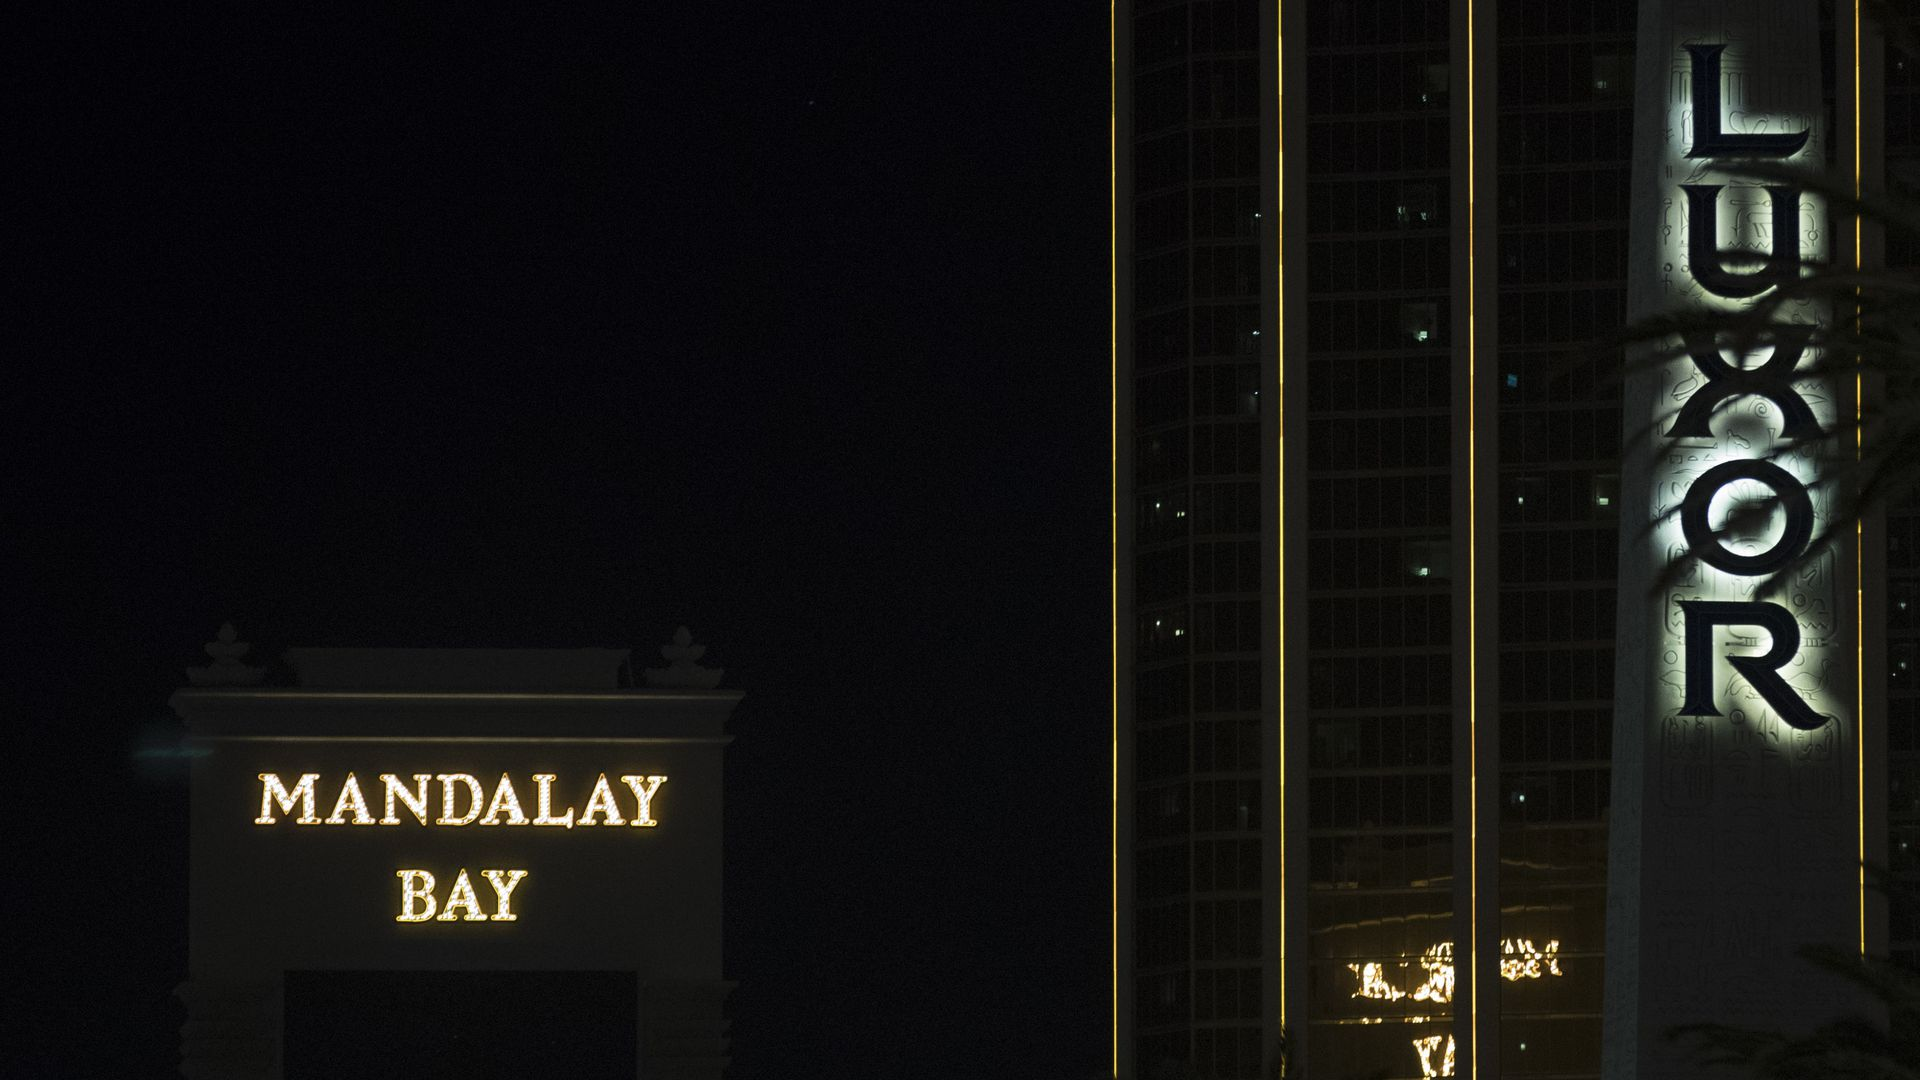 Mandalay Bay logo lit up in yellow with black background in nighttime.